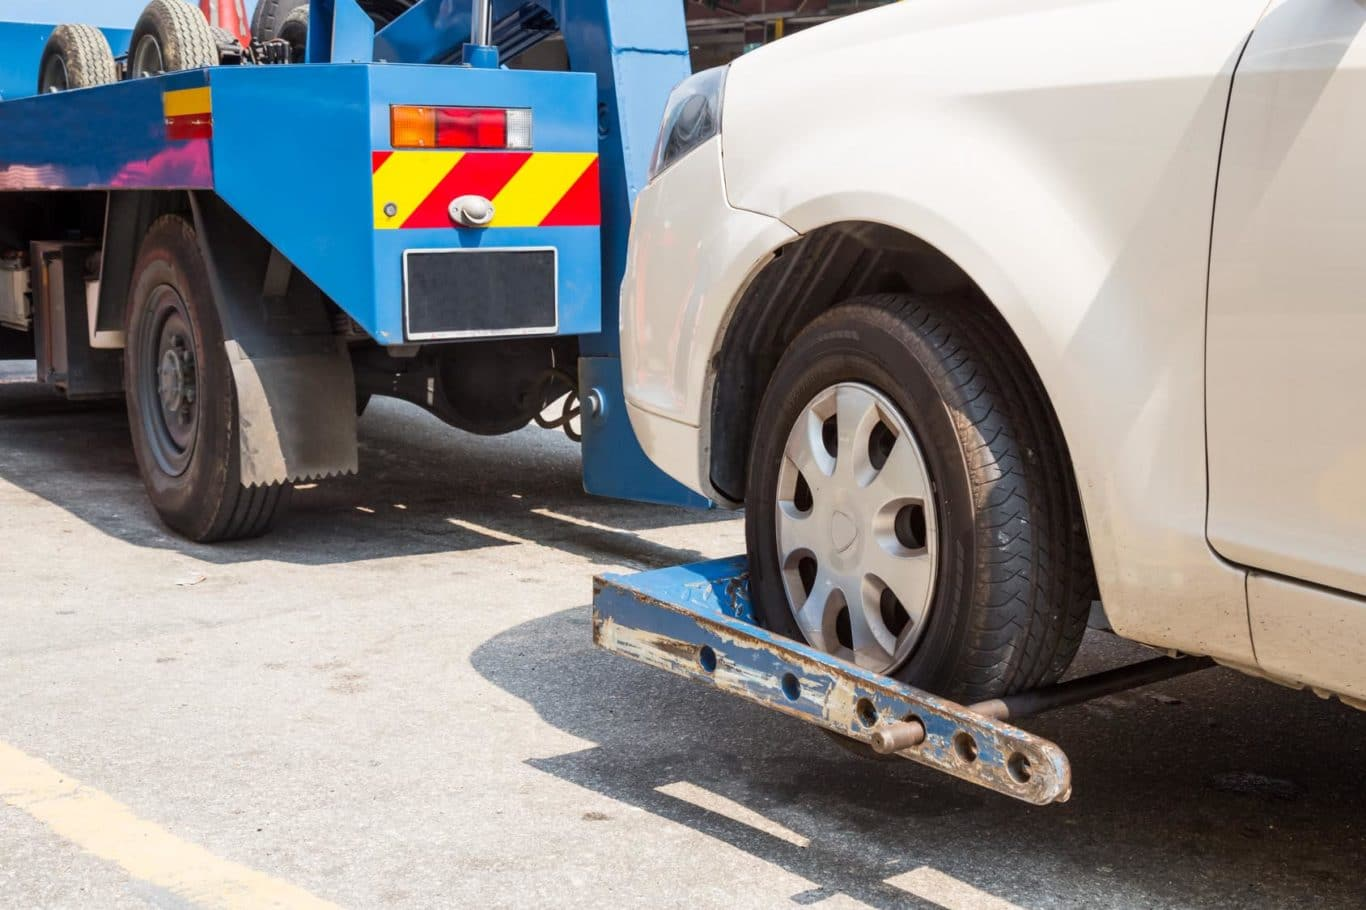 Carrickmines expert Breakdown Assistance services